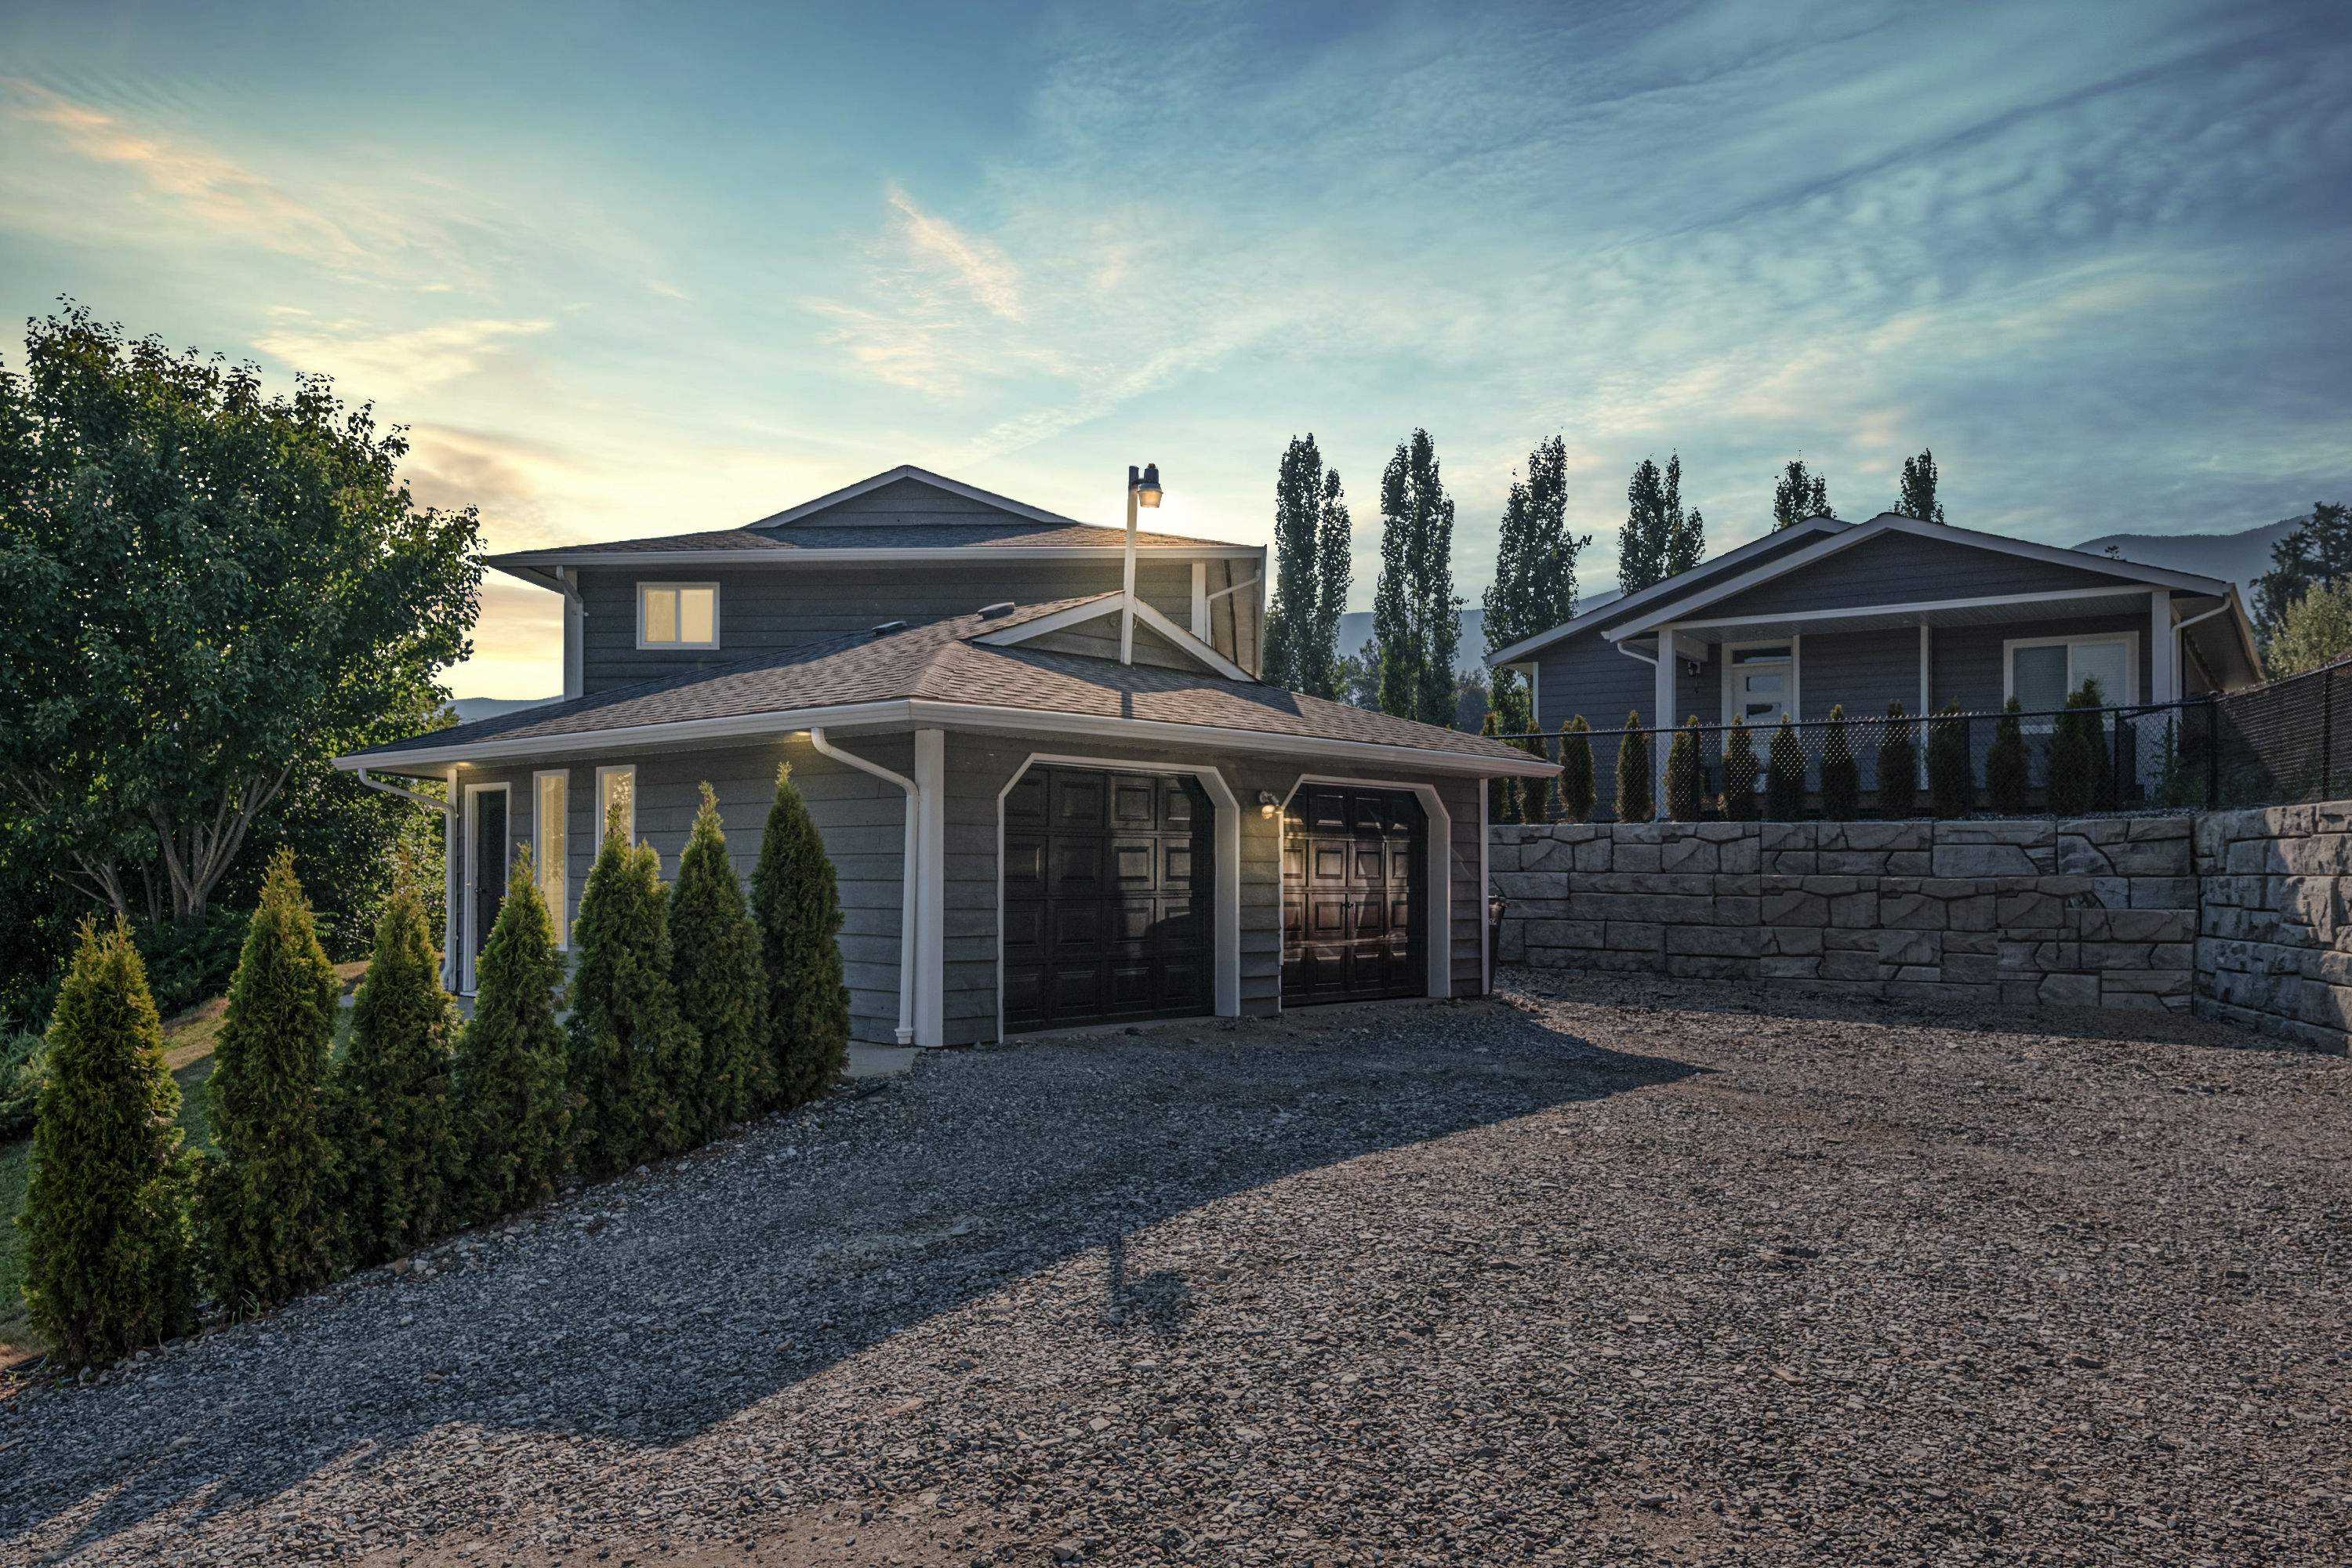 2675 Jarvis Cres, Armstrong BC - $849,000